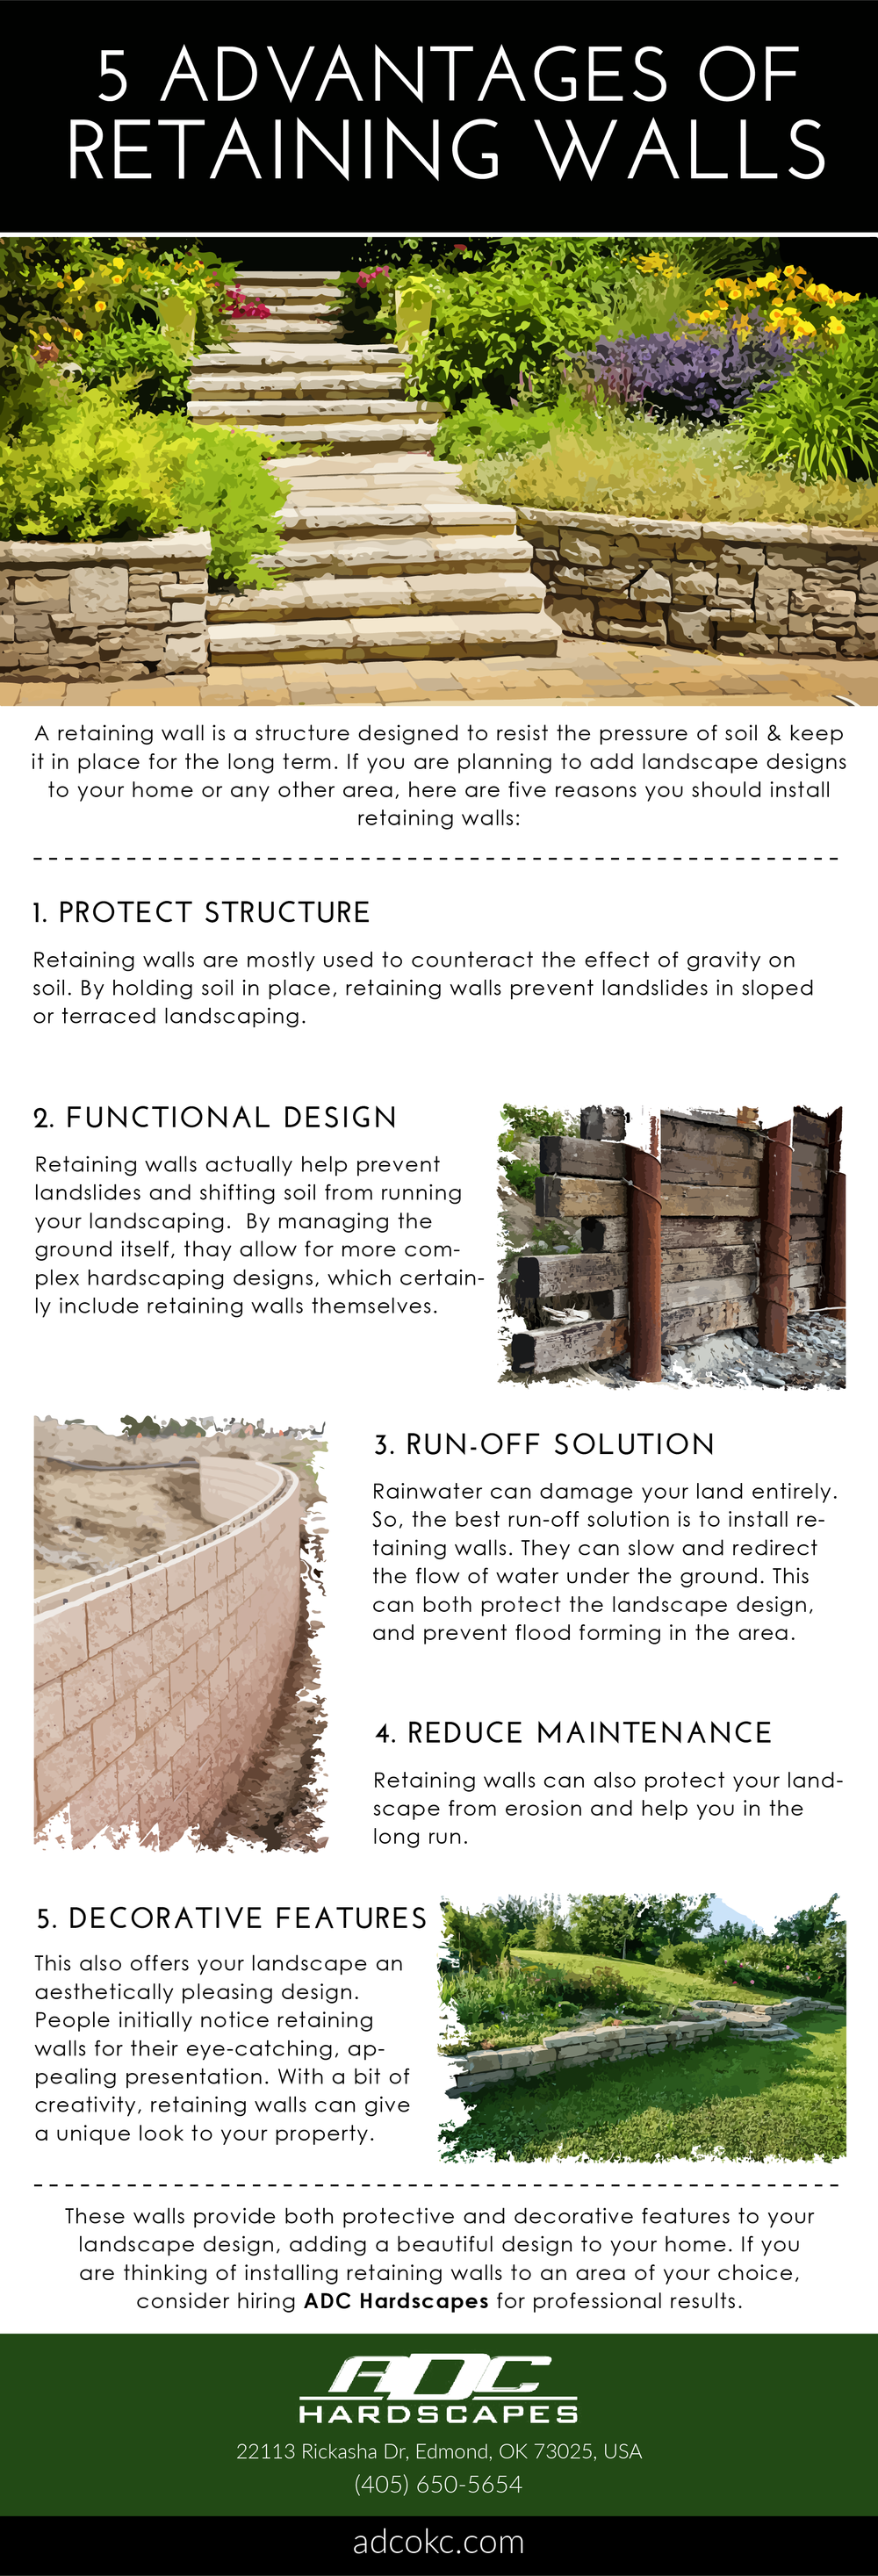 5 Advantages Of Retaining Wall.png